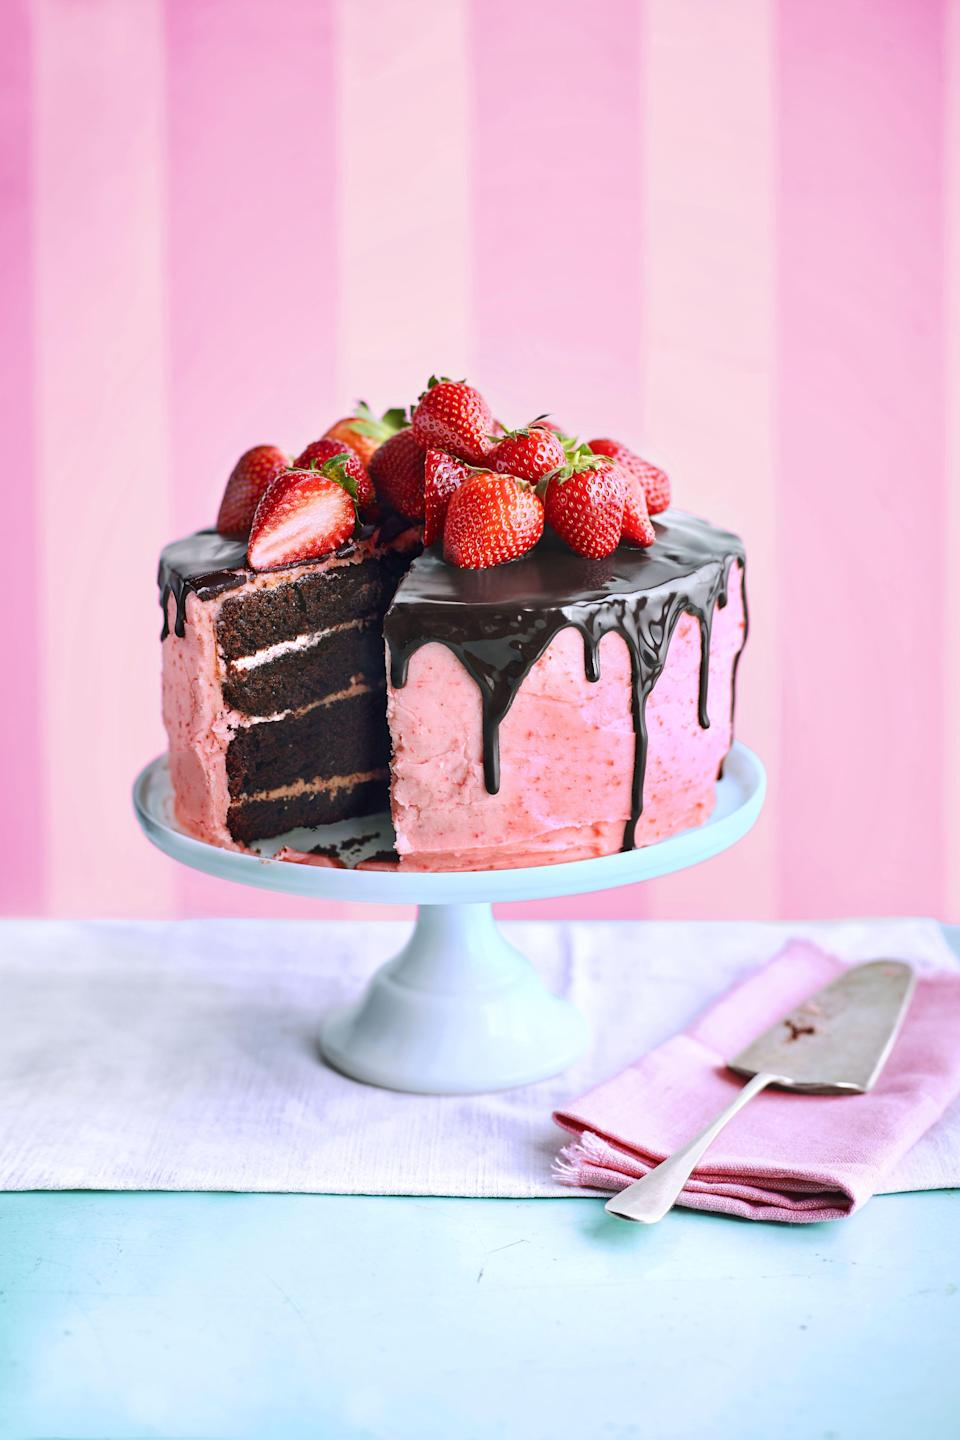 """<p>Taking on the task of picking out the perfect birthday <a href=""""https://www.womansday.com/cake-recipes/"""" rel=""""nofollow noopener"""" target=""""_blank"""" data-ylk=""""slk:cake recipe"""" class=""""link rapid-noclick-resp"""">cake recipe</a> to make can be intimidating. You want to choose a recipe that's special, but quick and easy enough to make that you can pull it off and wow the birthday boy or girl. Thankfully, there are more than a few easy birthday cake recipes you can make from scratch without overwhelming yourself.</p><p>Whether you keep things simple and sweet with a <a href=""""https://www.womansday.com/food-recipes/a32894164/classic-vanilla-cake-recipe/"""" rel=""""nofollow noopener"""" target=""""_blank"""" data-ylk=""""slk:classic vanilla cake"""" class=""""link rapid-noclick-resp"""">classic vanilla cake</a>, test your baking prowess with a lemon poppy seed cake with strawberries, or delight a young birthday boy or girl with a snake cake, there are a slew of classic and unusual dessert recipes to choose from on our list. And if you're still feeling intimidated at the thought of making a large cake, you can dip your toes in the baking water by trying out a few <a href=""""https://www.womansday.com/food-recipes/food-drinks/g1763/periodic-table-of-cupcakes-54764/"""" rel=""""nofollow noopener"""" target=""""_blank"""" data-ylk=""""slk:cupcake recipes"""" class=""""link rapid-noclick-resp"""">cupcake recipes</a> too.</p><p>Yes, <a href=""""https://www.womansday.com/life/g3256/birthday-gifts-for-her/"""" rel=""""nofollow noopener"""" target=""""_blank"""" data-ylk=""""slk:birthday presents"""" class=""""link rapid-noclick-resp"""">birthday presents</a> are great and <a href=""""https://www.womansday.com/life/a36816281/what-to-write-in-birthday-card/"""" rel=""""nofollow noopener"""" target=""""_blank"""" data-ylk=""""slk:birthday cards"""" class=""""link rapid-noclick-resp"""">birthday cards</a> can be incredibly thoughtful, but nothing says """"I love you and I'm so glad you were born"""" like a show-stopping birthday cake, including but certainly not limited to the following easy-to-bake types of"""